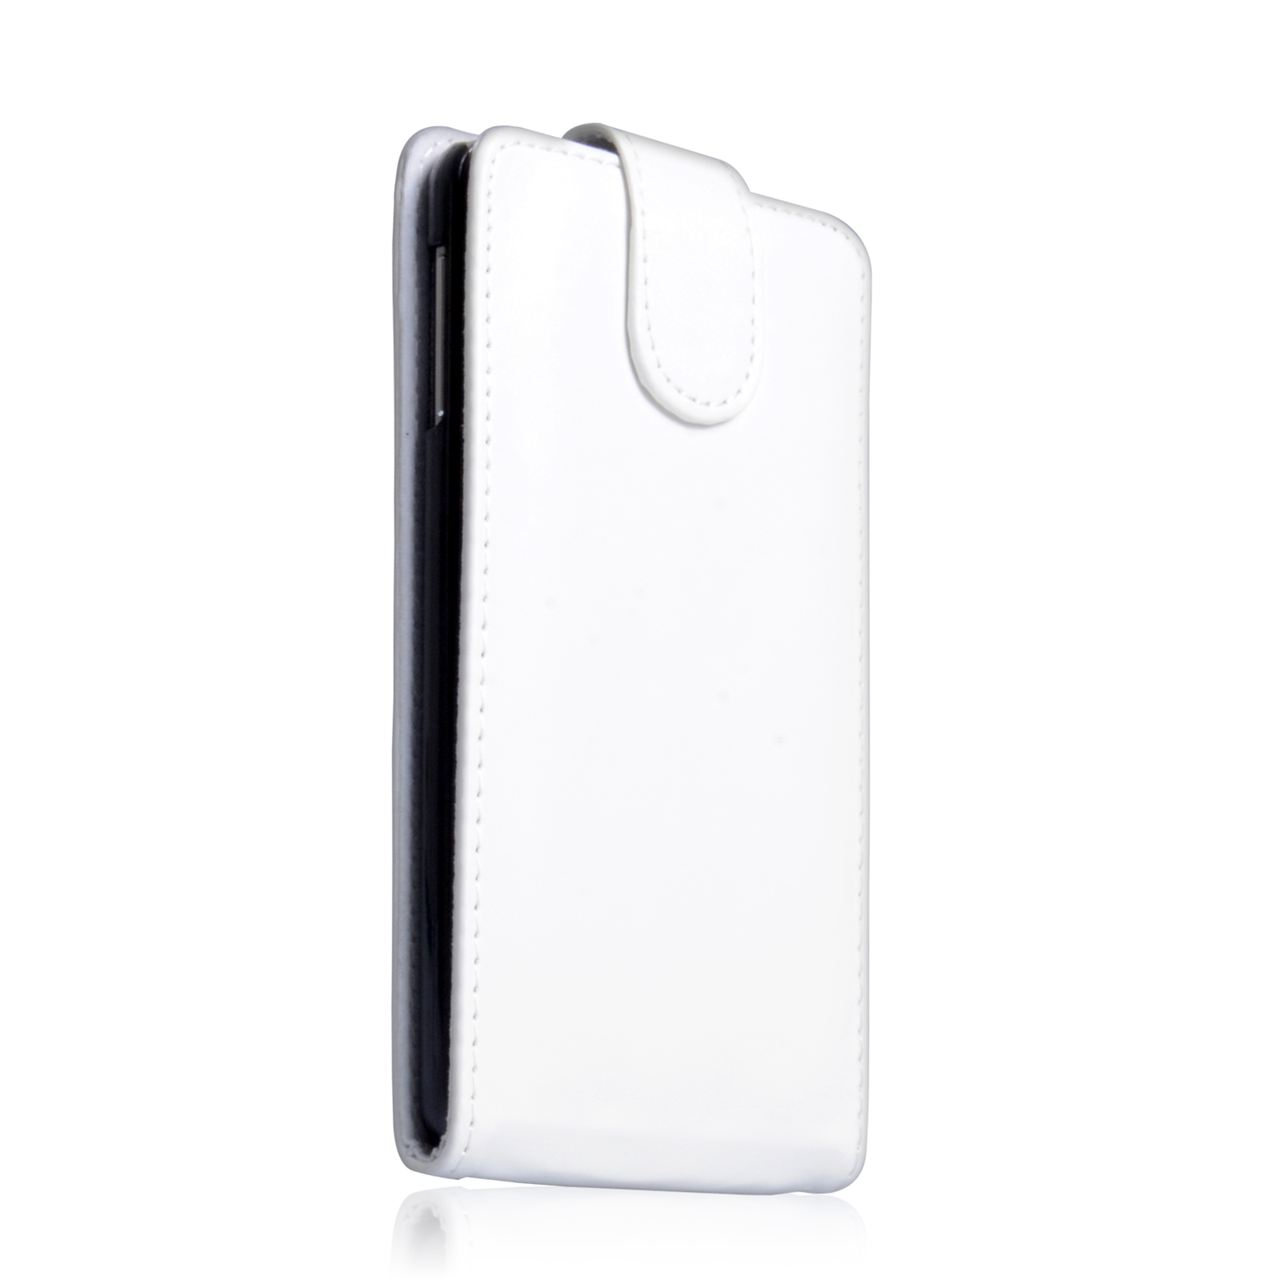 YouSave Samsung Galaxy Note 3 Leather Effect Flip Case - White